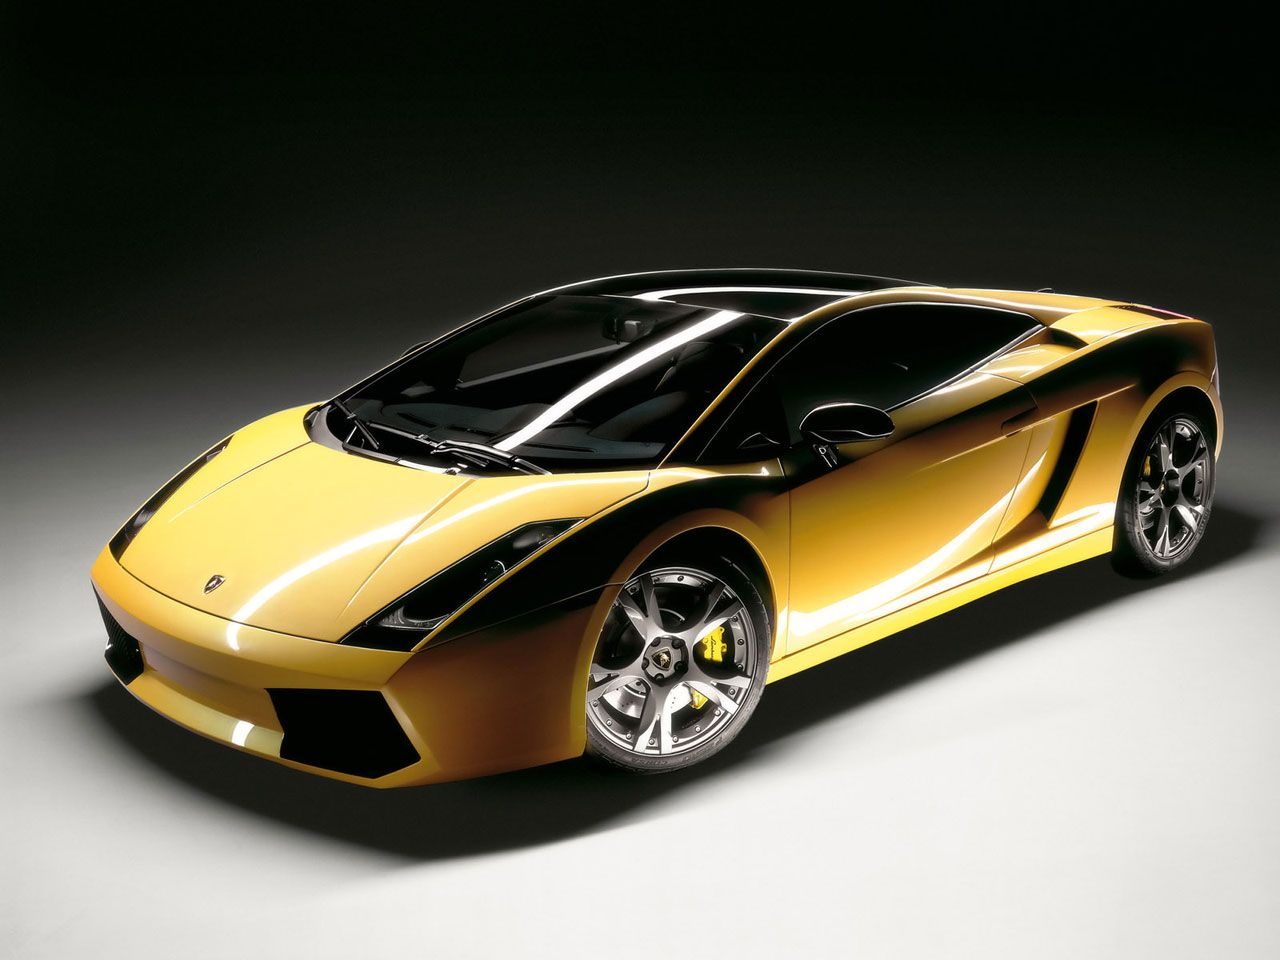 2006 Lamborghini Gallardo SE Wallpaper Pictures SupercarStats 1280x960